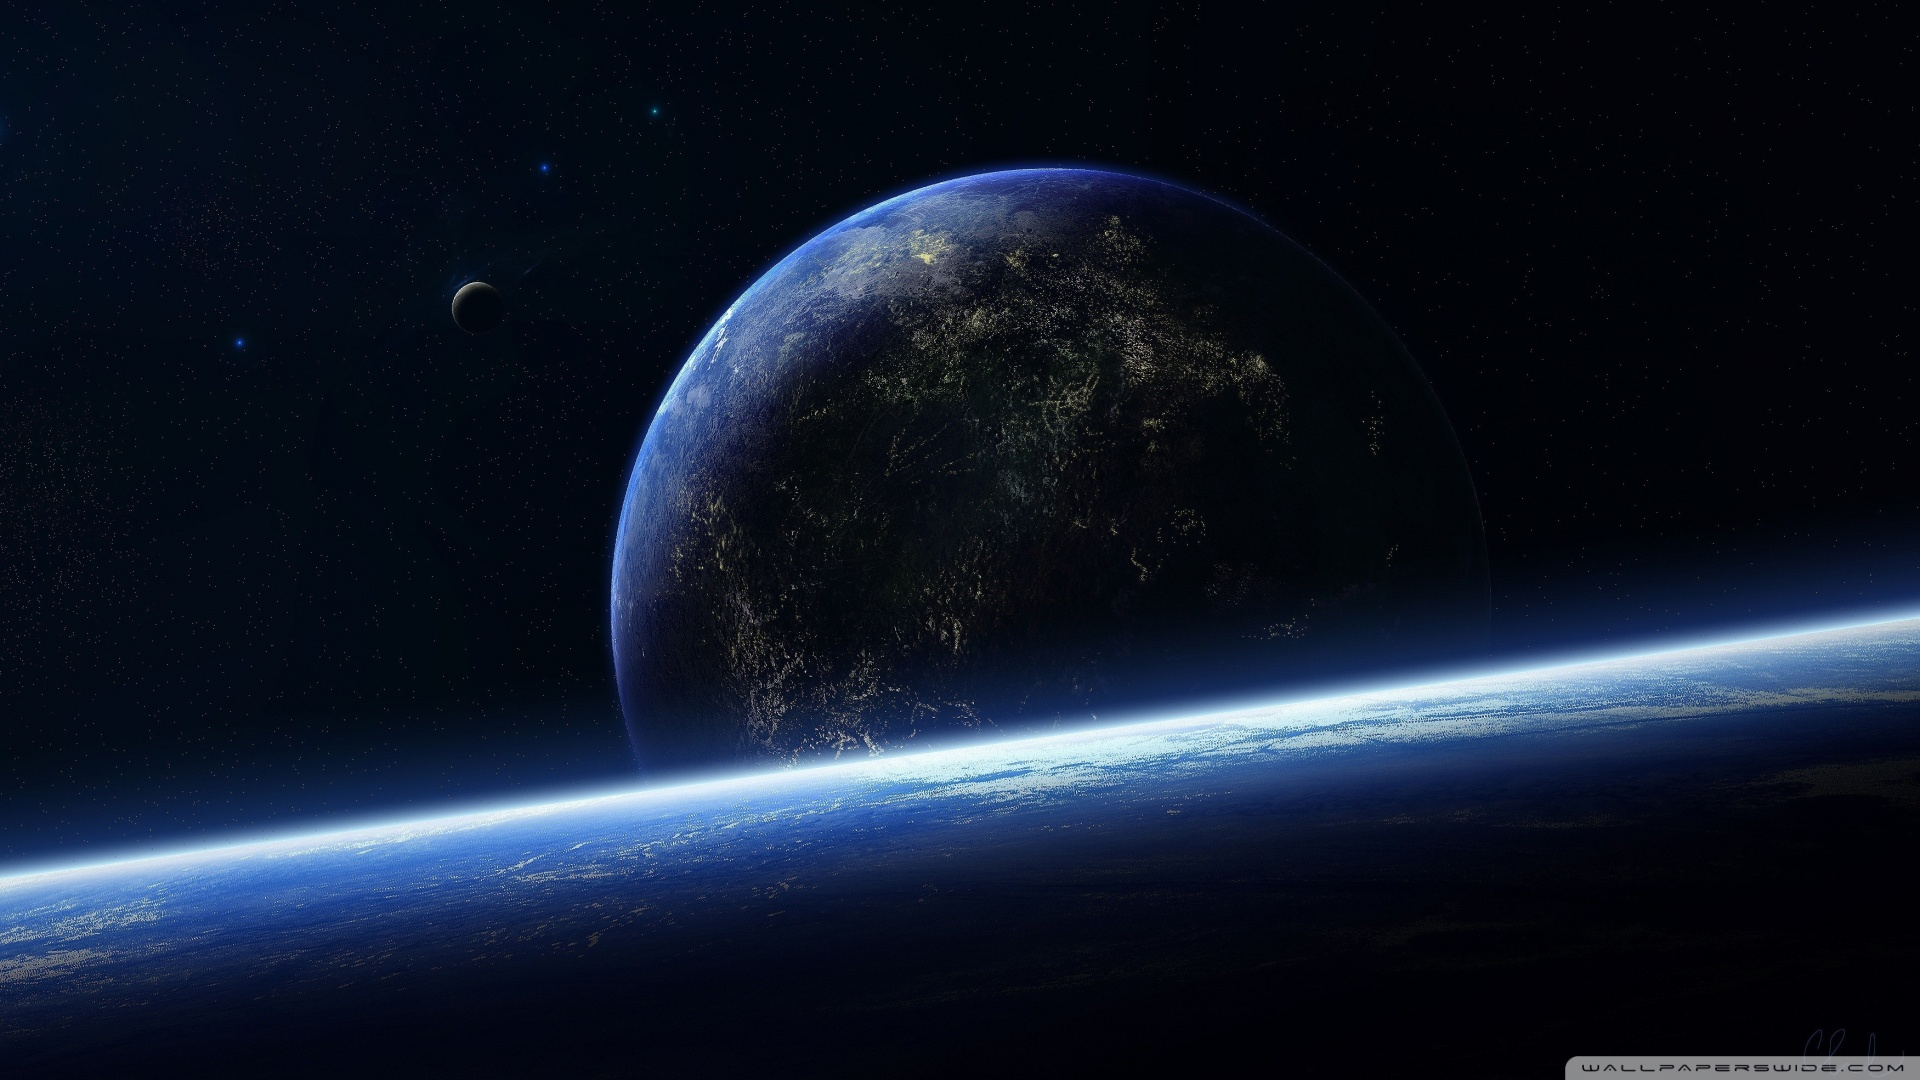 Earth's surface 49901